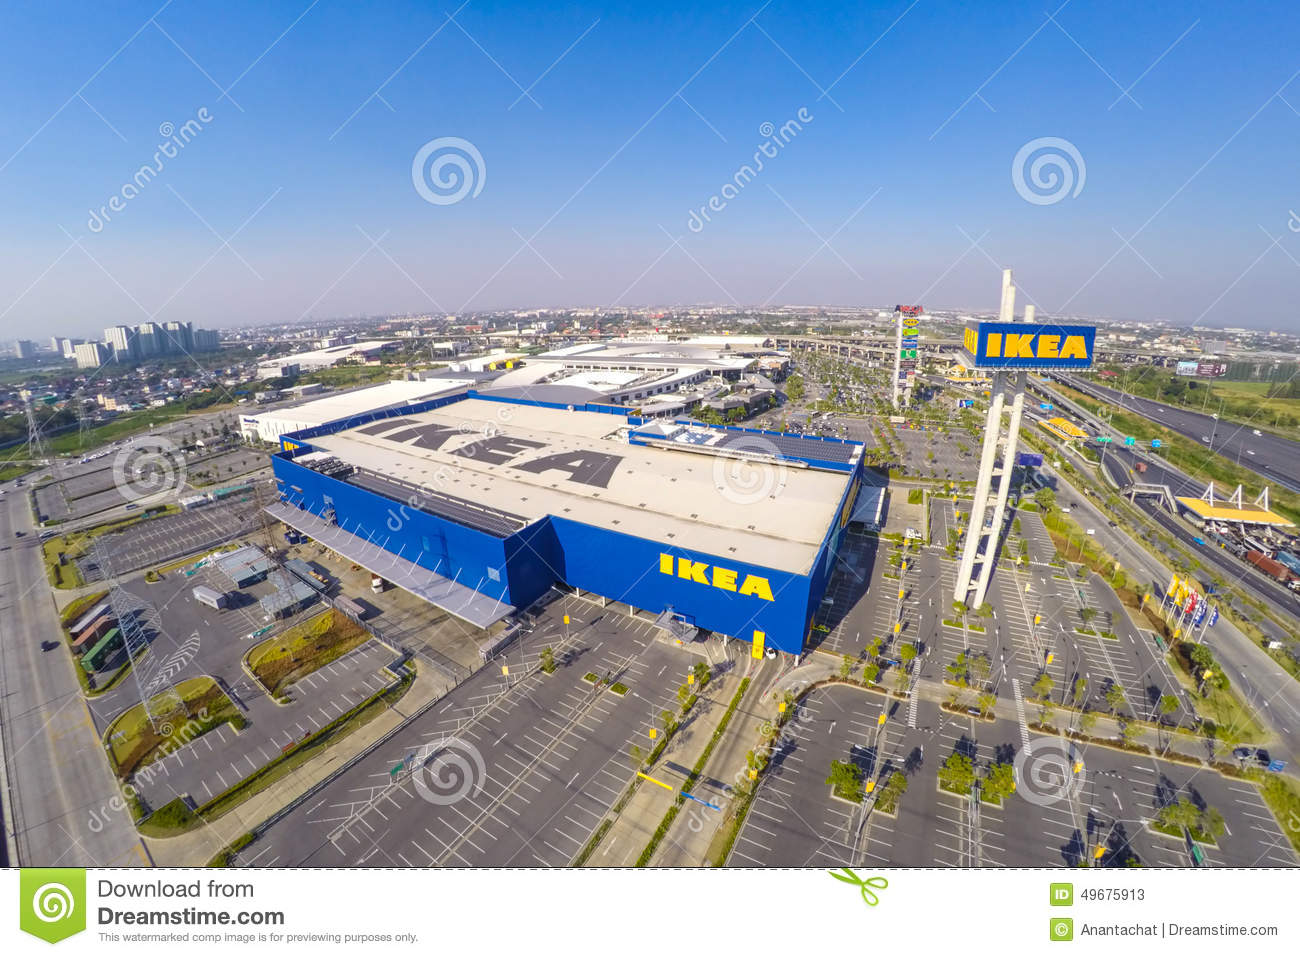 Where Is Ikea In Thailand